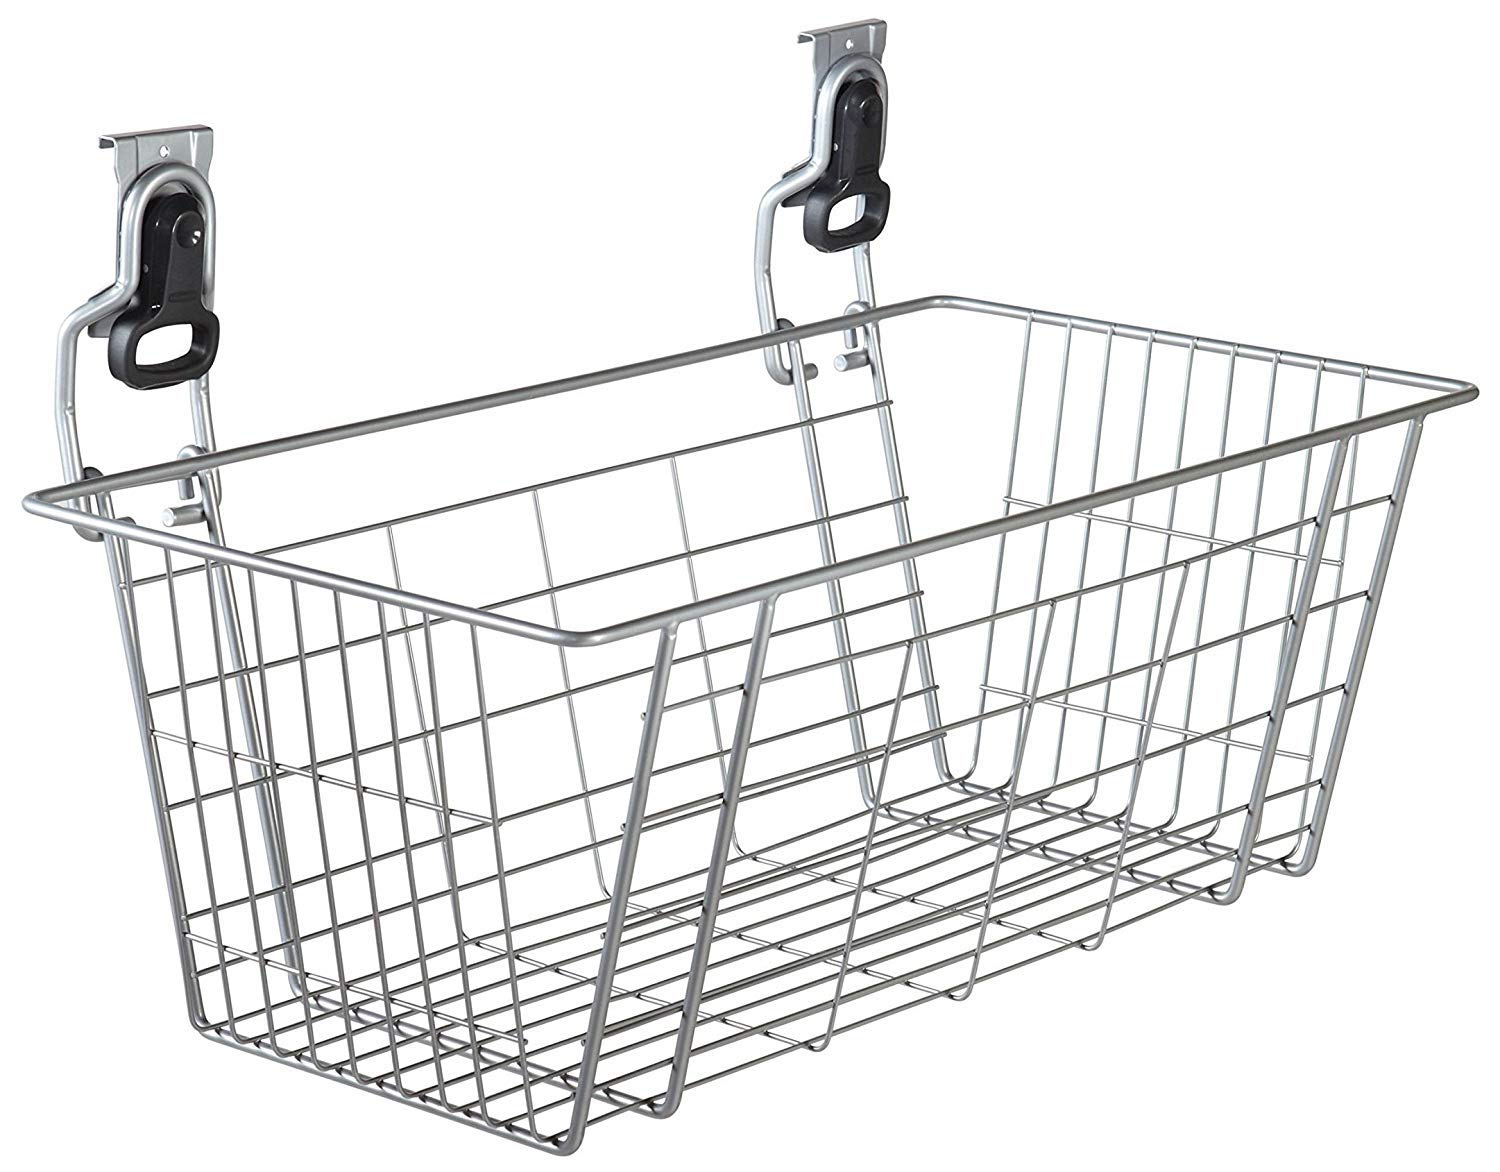 FastTrack Garage Storage Wire Mesh Basket by unbrand